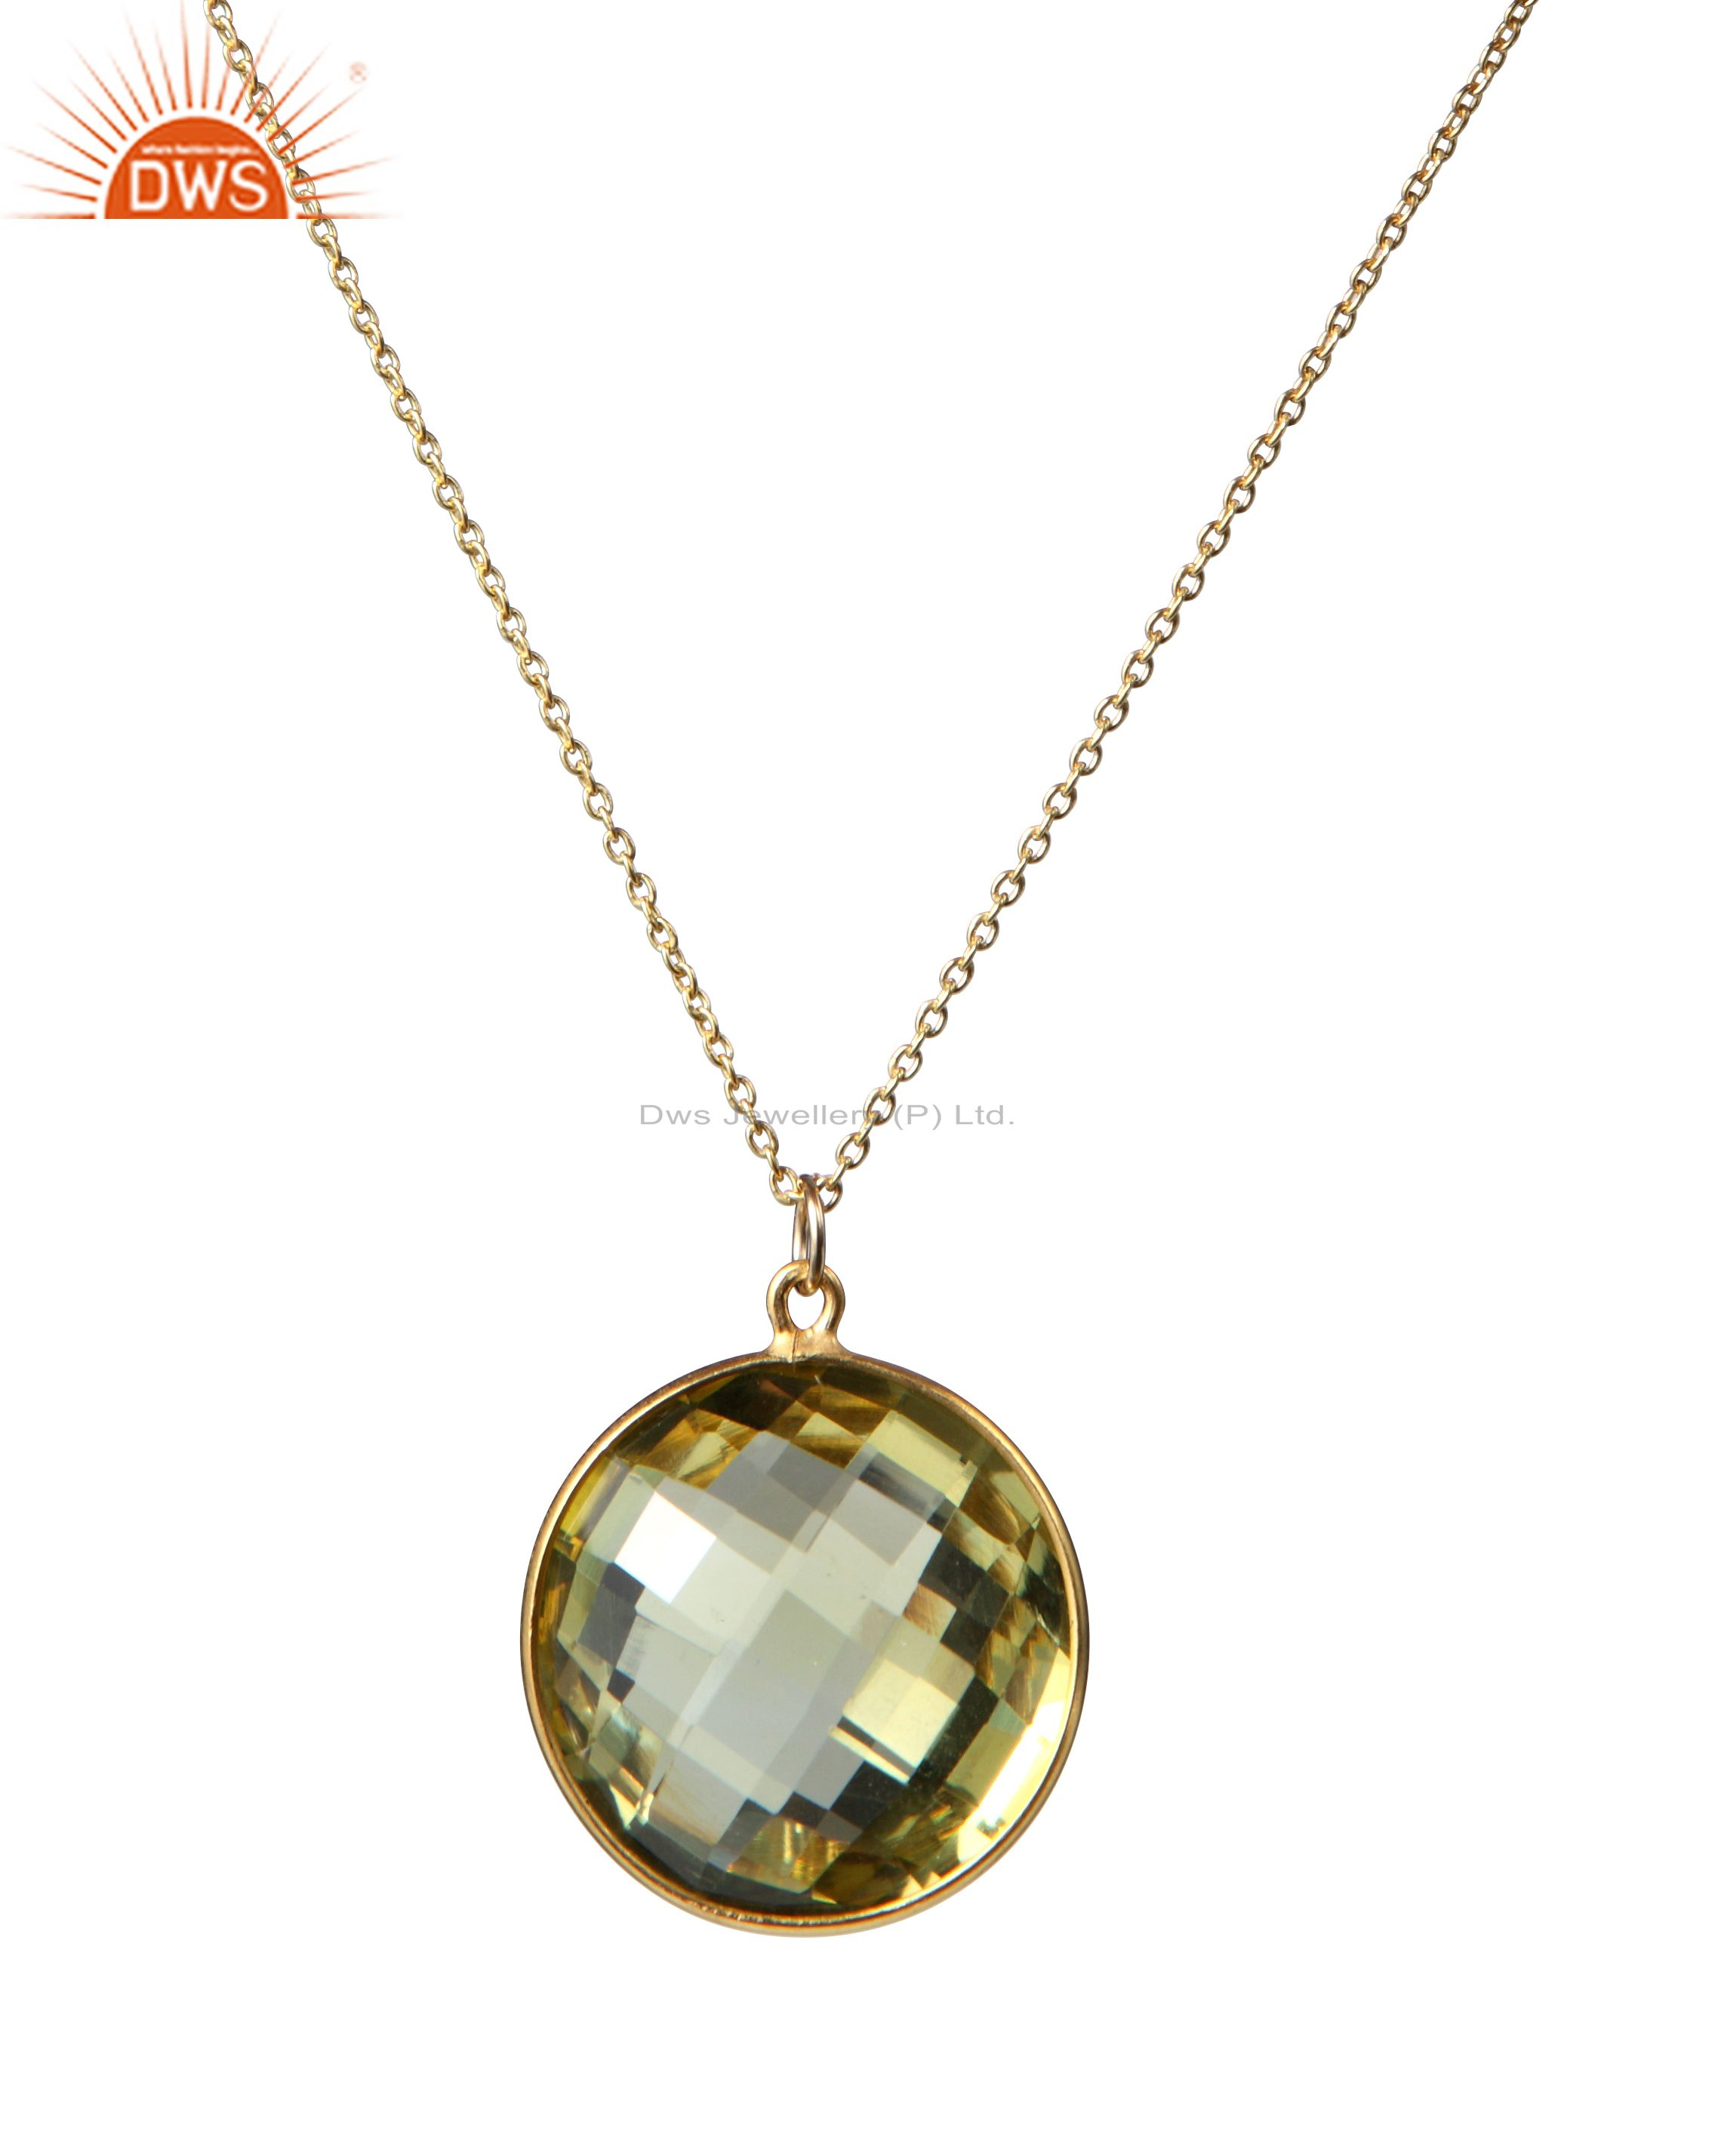 14K Yellow Gold Plated Sterling Silver Lemon Topaz Bezel Set Pendant With Chain